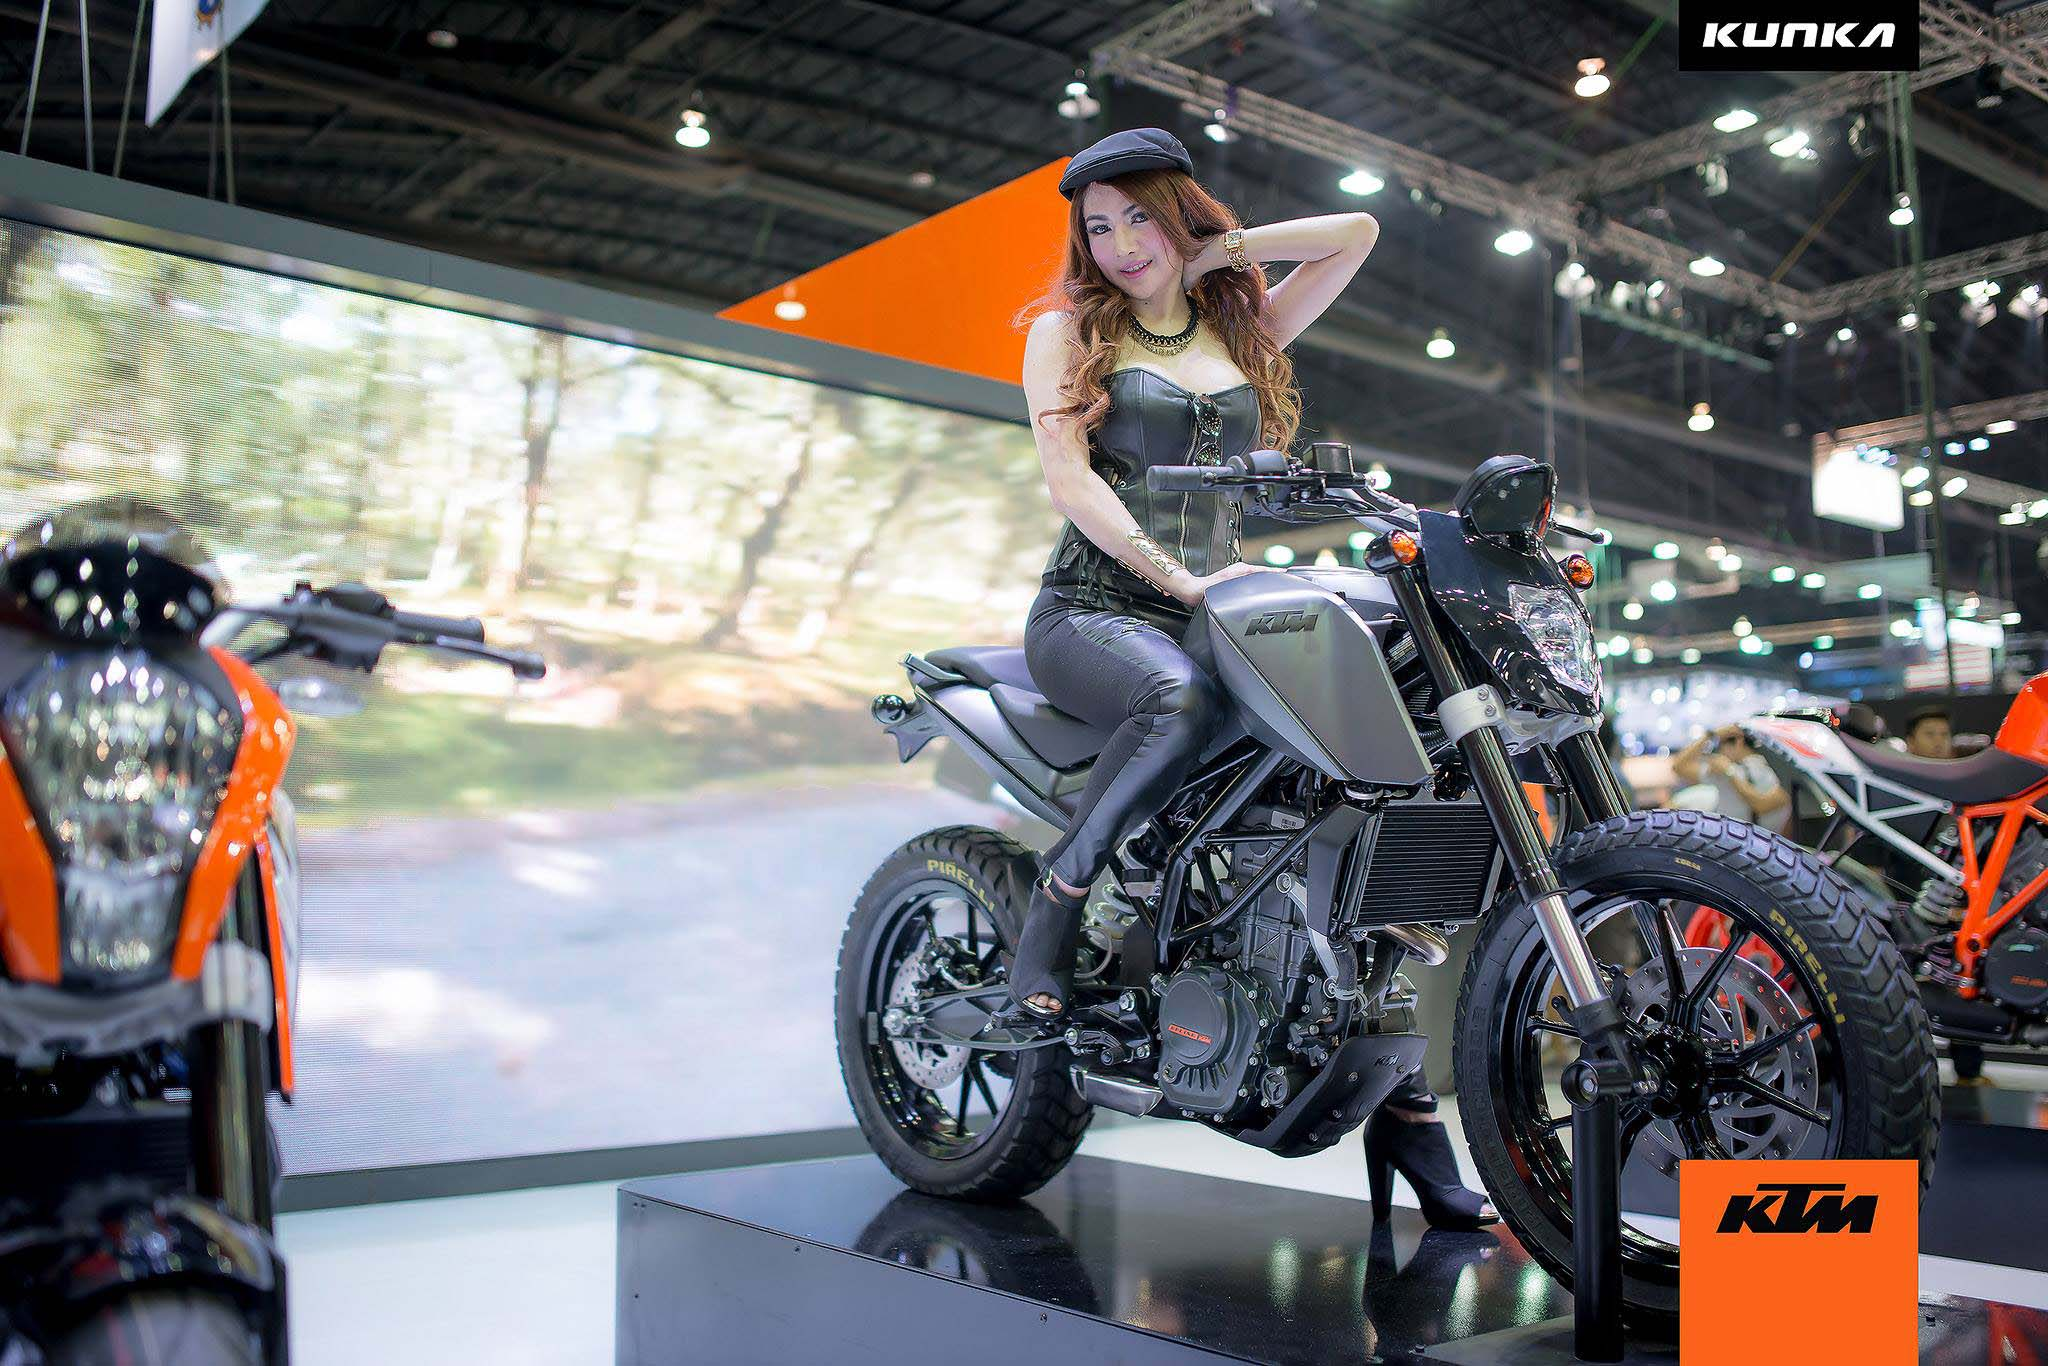 Cafe Racer Girl Wallpaper Ktm 200 Duke T Concepts By Kunka Asphalt Amp Rubber